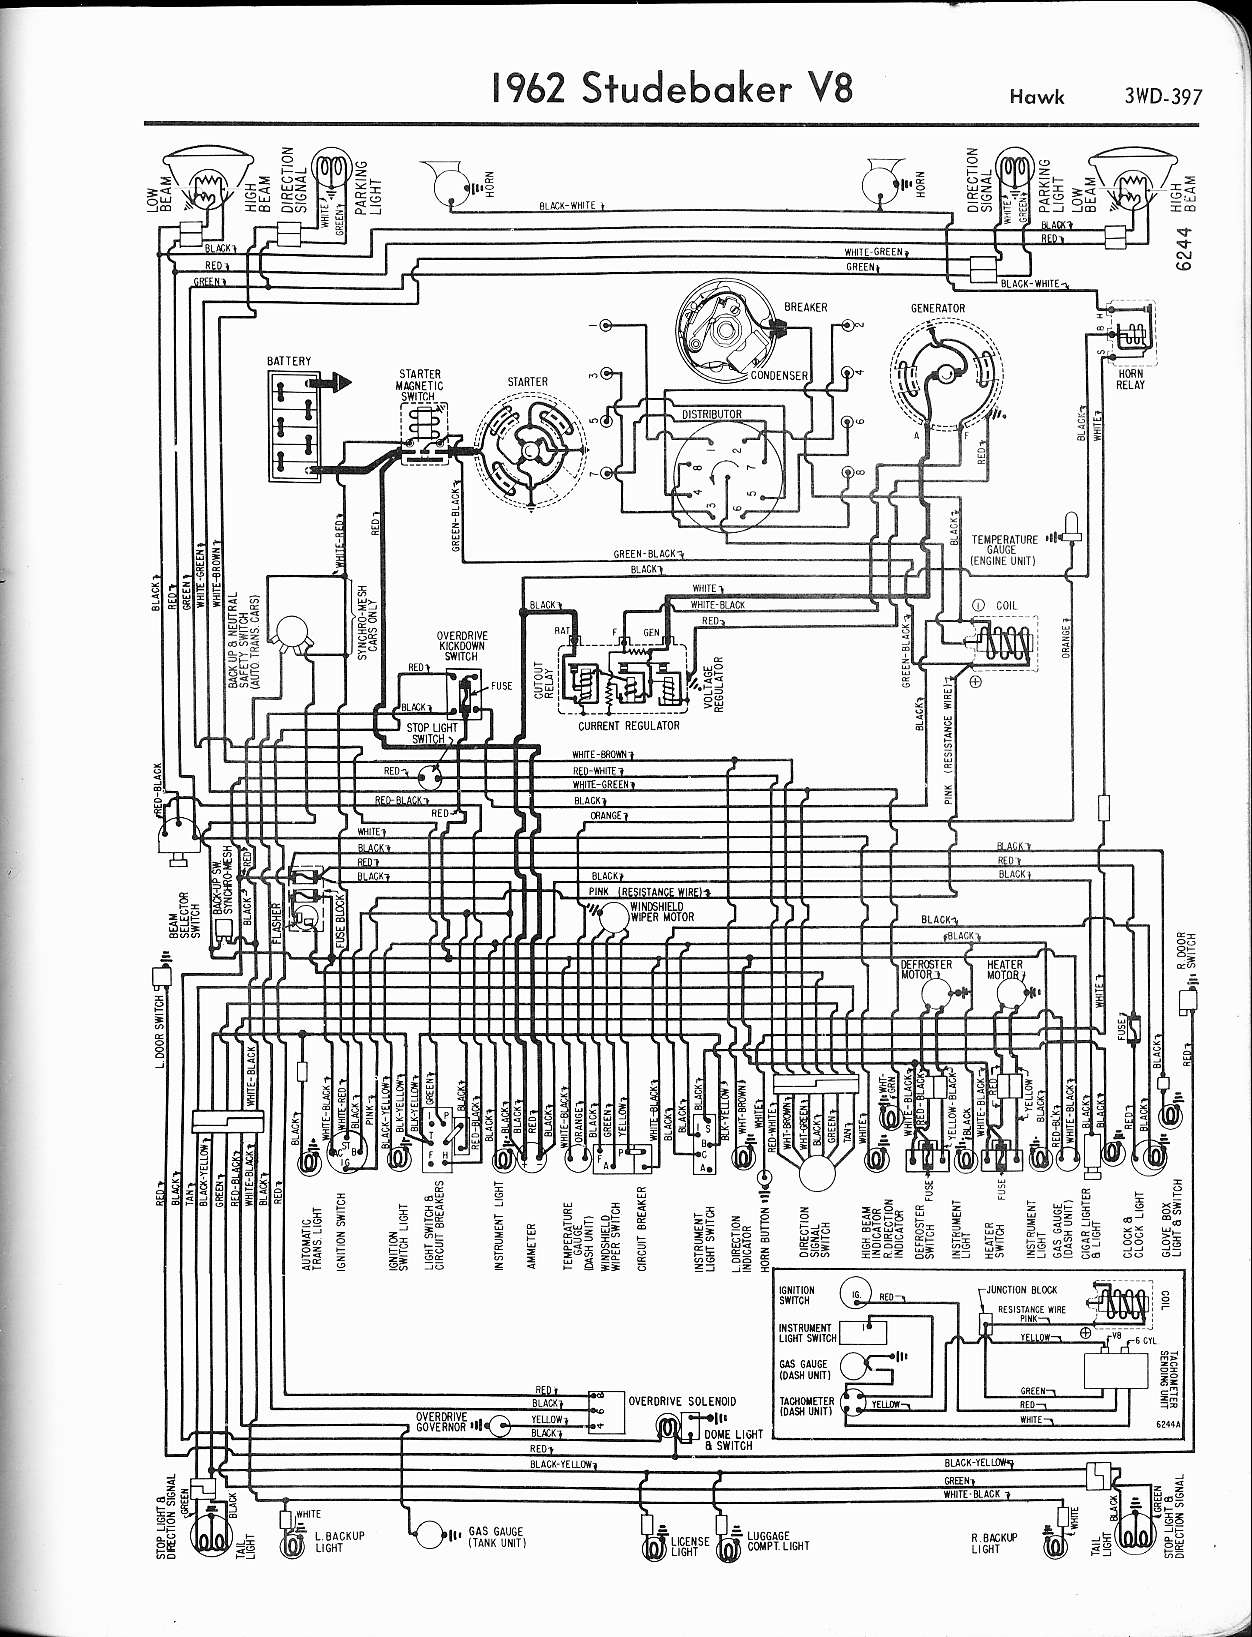 studebaker wiring diagrams the old car manual project rh oldcarmanualproject com 1963 avanti wiring diagram 1963 studebaker avanti wiring diagram